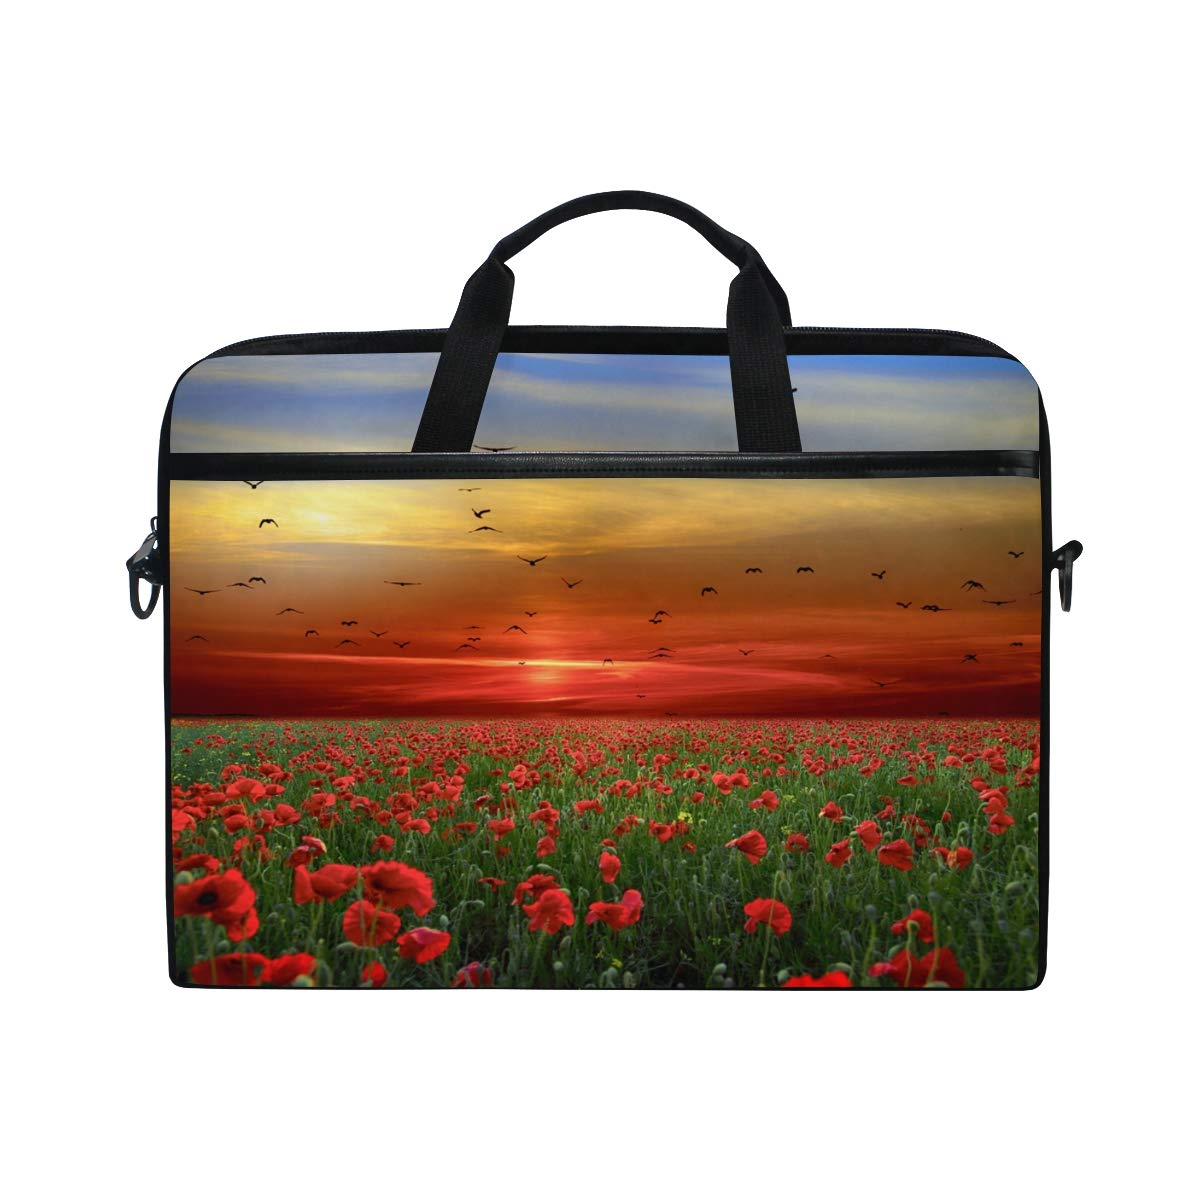 Suitable for 15 Inch Computers Briefcases Shoulder Bags Handbags Landscapemens and Womens Computer Bags